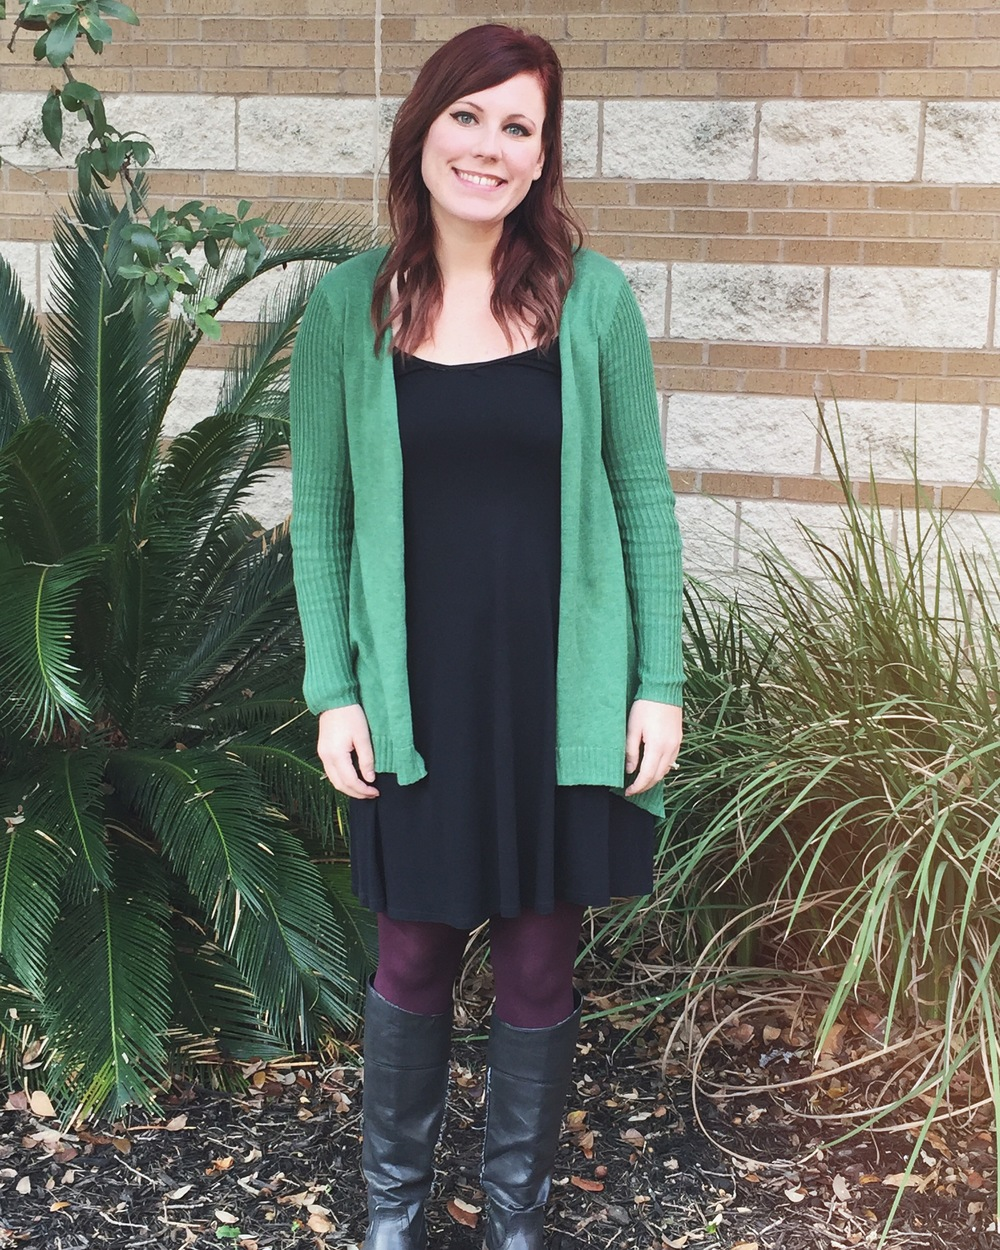 Day 1 - Classic black dress + Red tights + Black boots + Target green cardigan